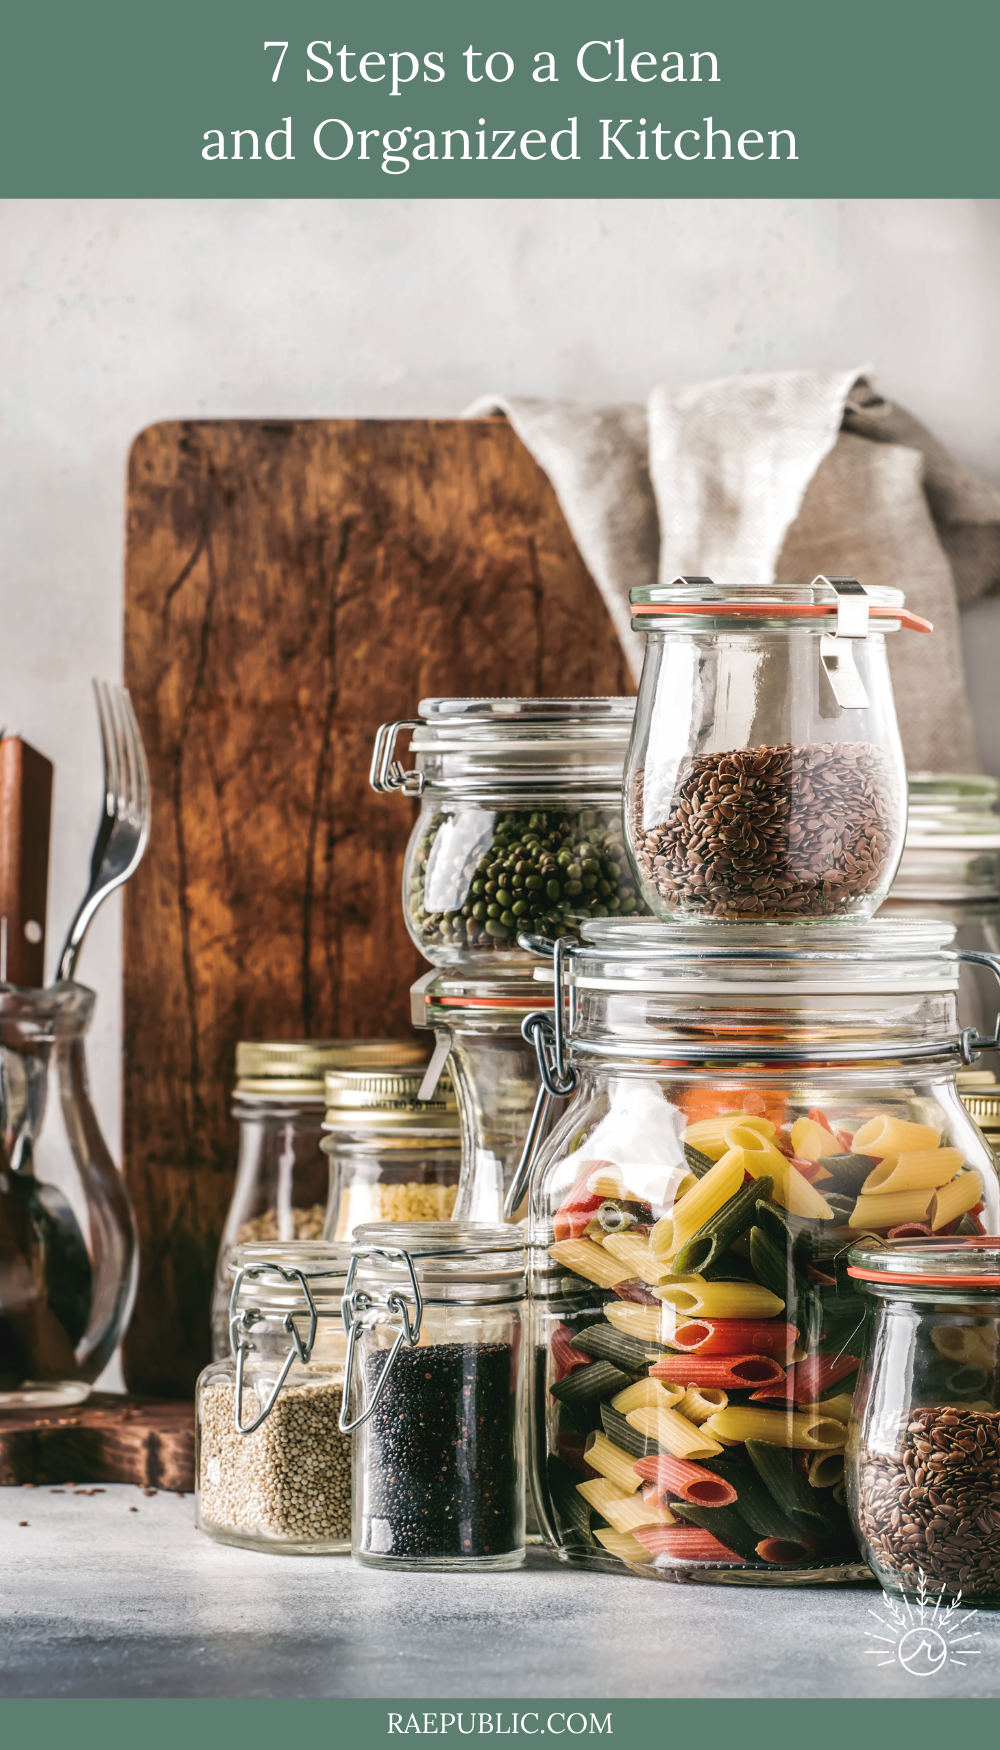 Seven easy steps to a clean and organized kitchen to be more productive and get more done.